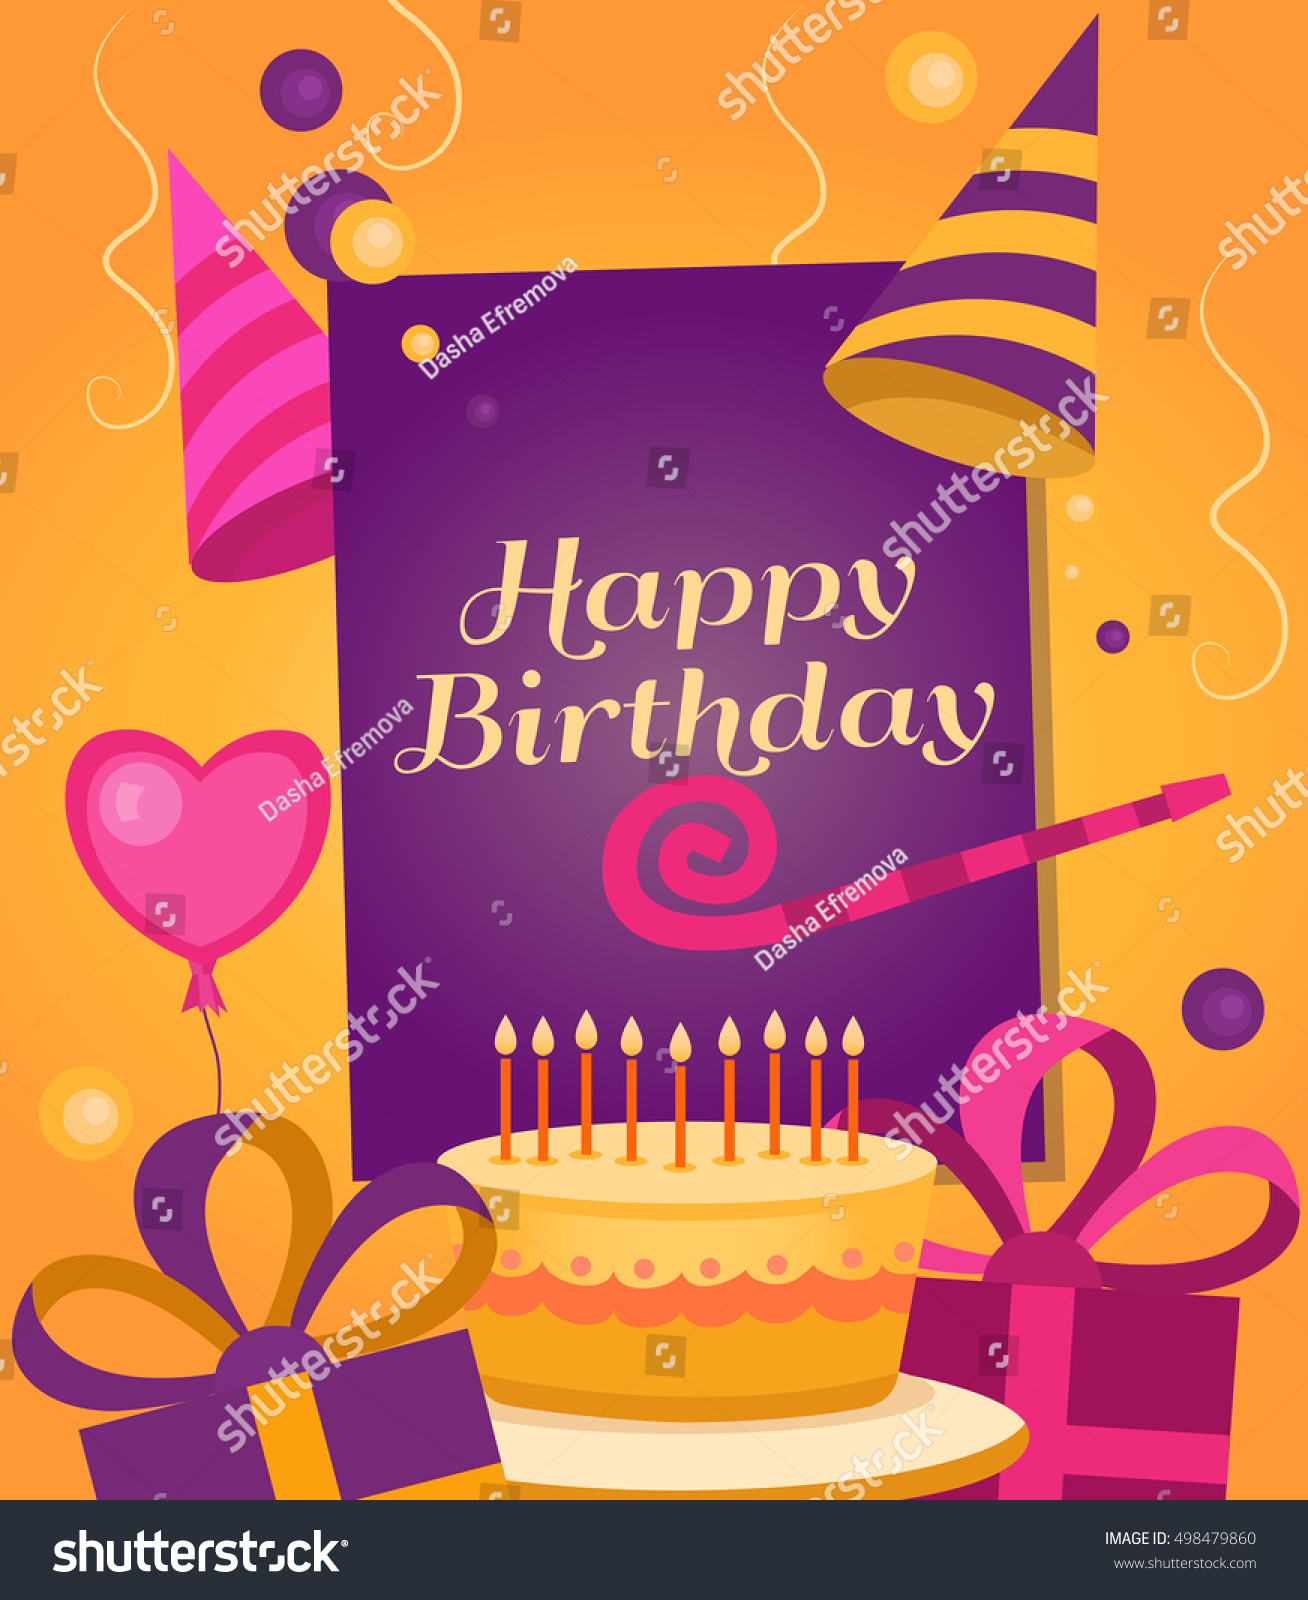 Happy Birthday Banner With Gift Cake Balloon Klaxon Cap Vector Background